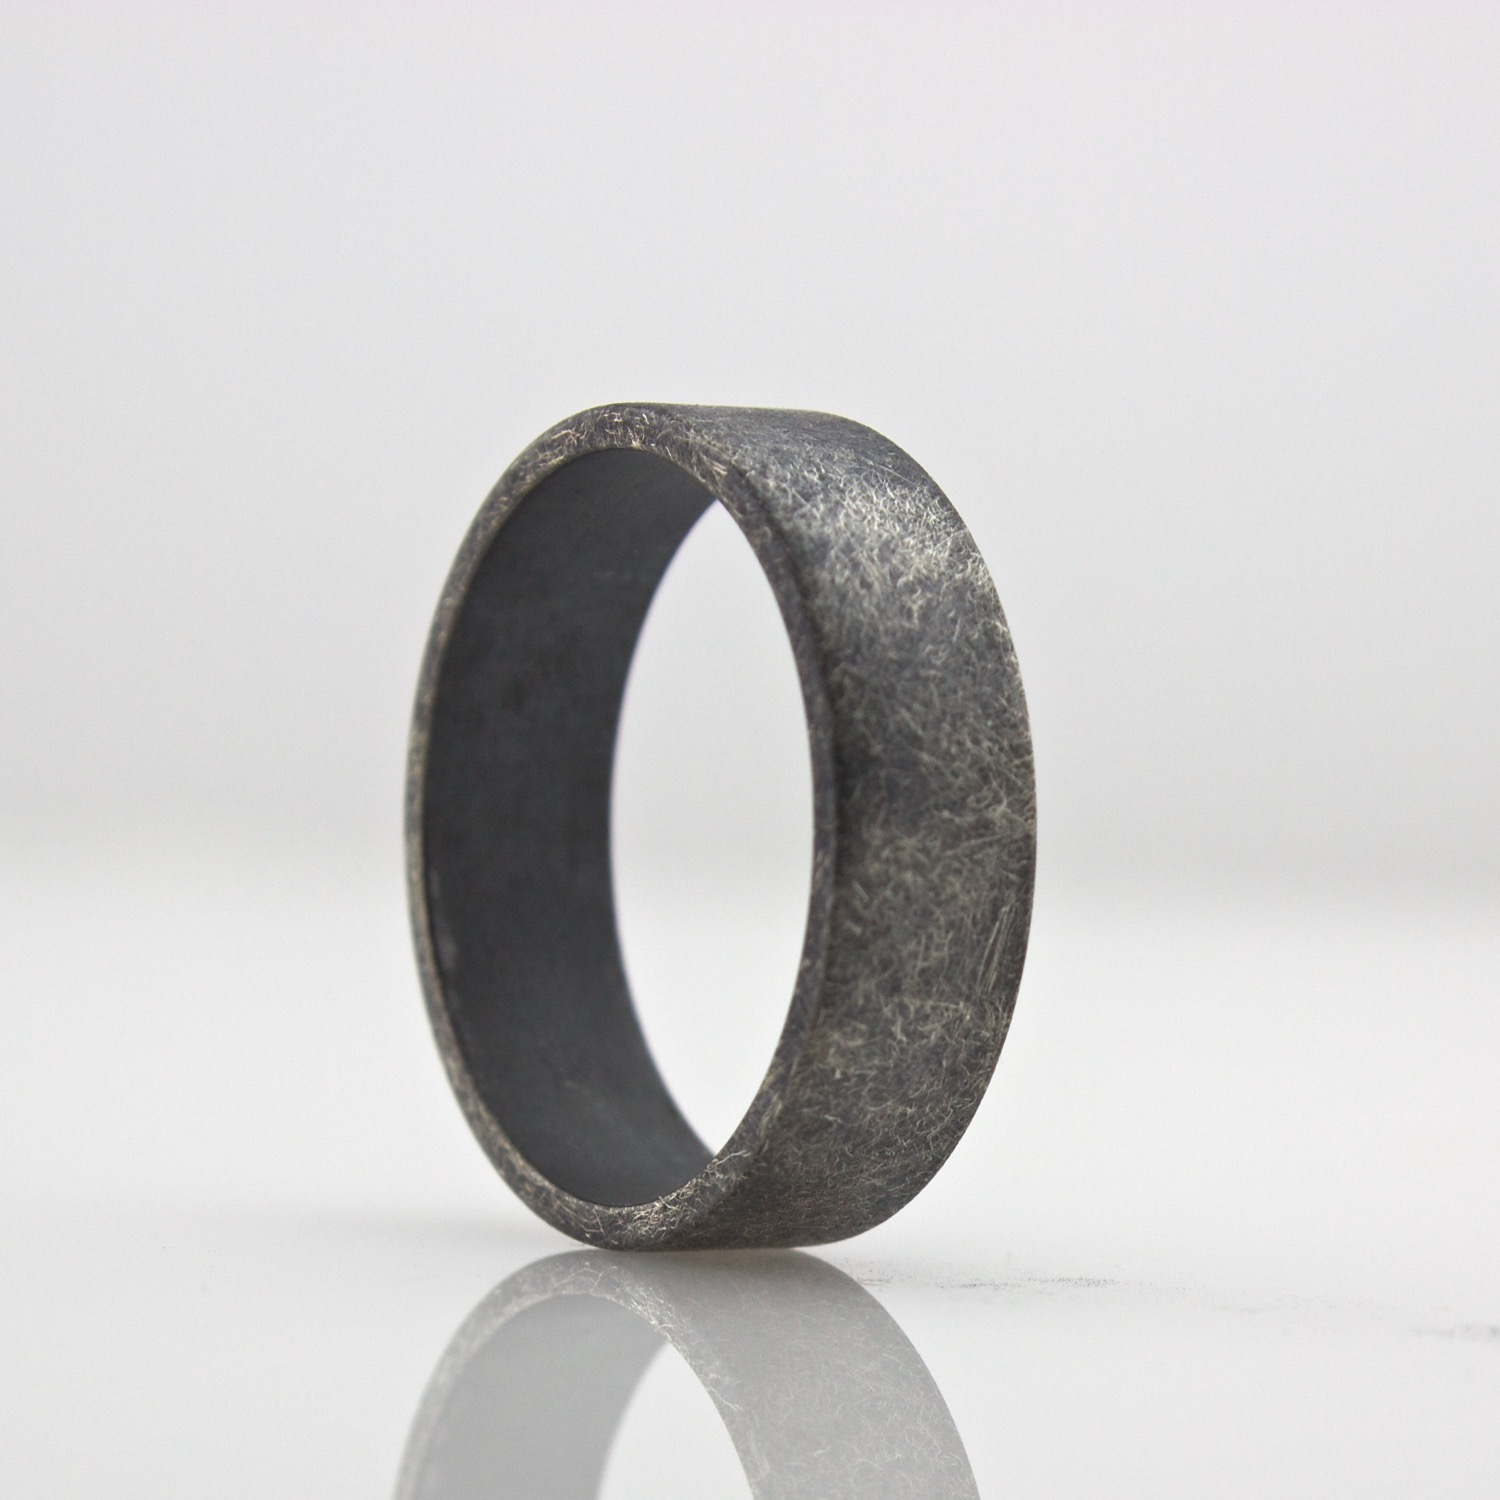 weathering in rings handmade ring process new epheriell oxidized men wide s oxidised at by wedding silver sterling flat australia glimpse a band the mens